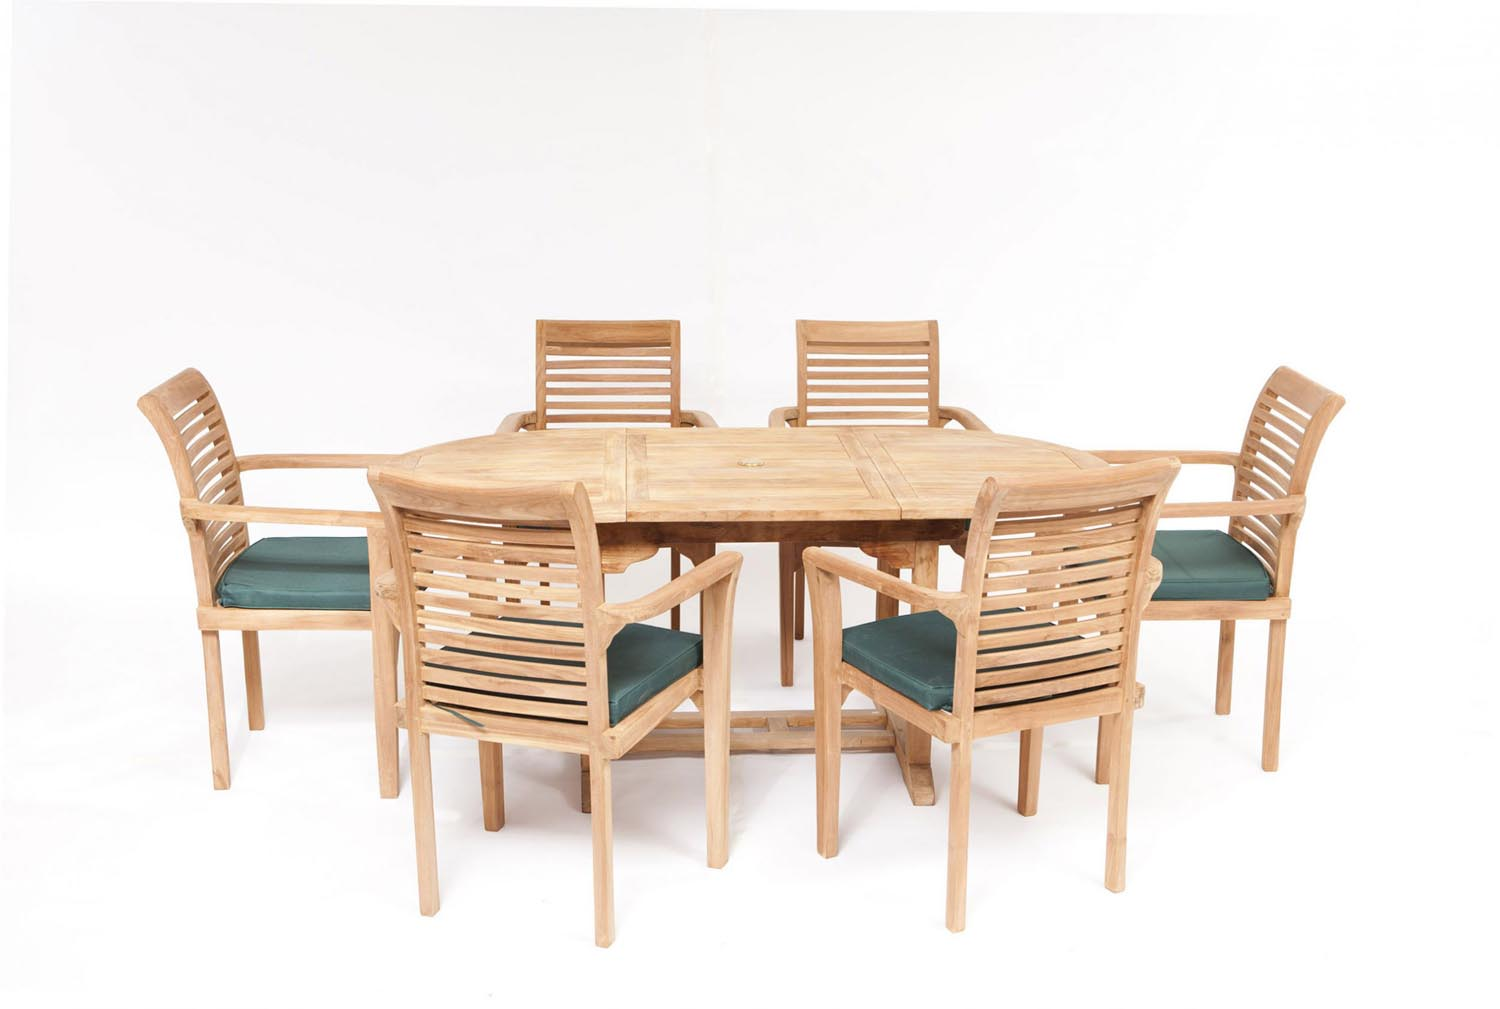 https://www.firstfurniture.co.uk/pub/media/catalog/product/2/5/2500x1682_1468231326ht2messinastacking1.jpg